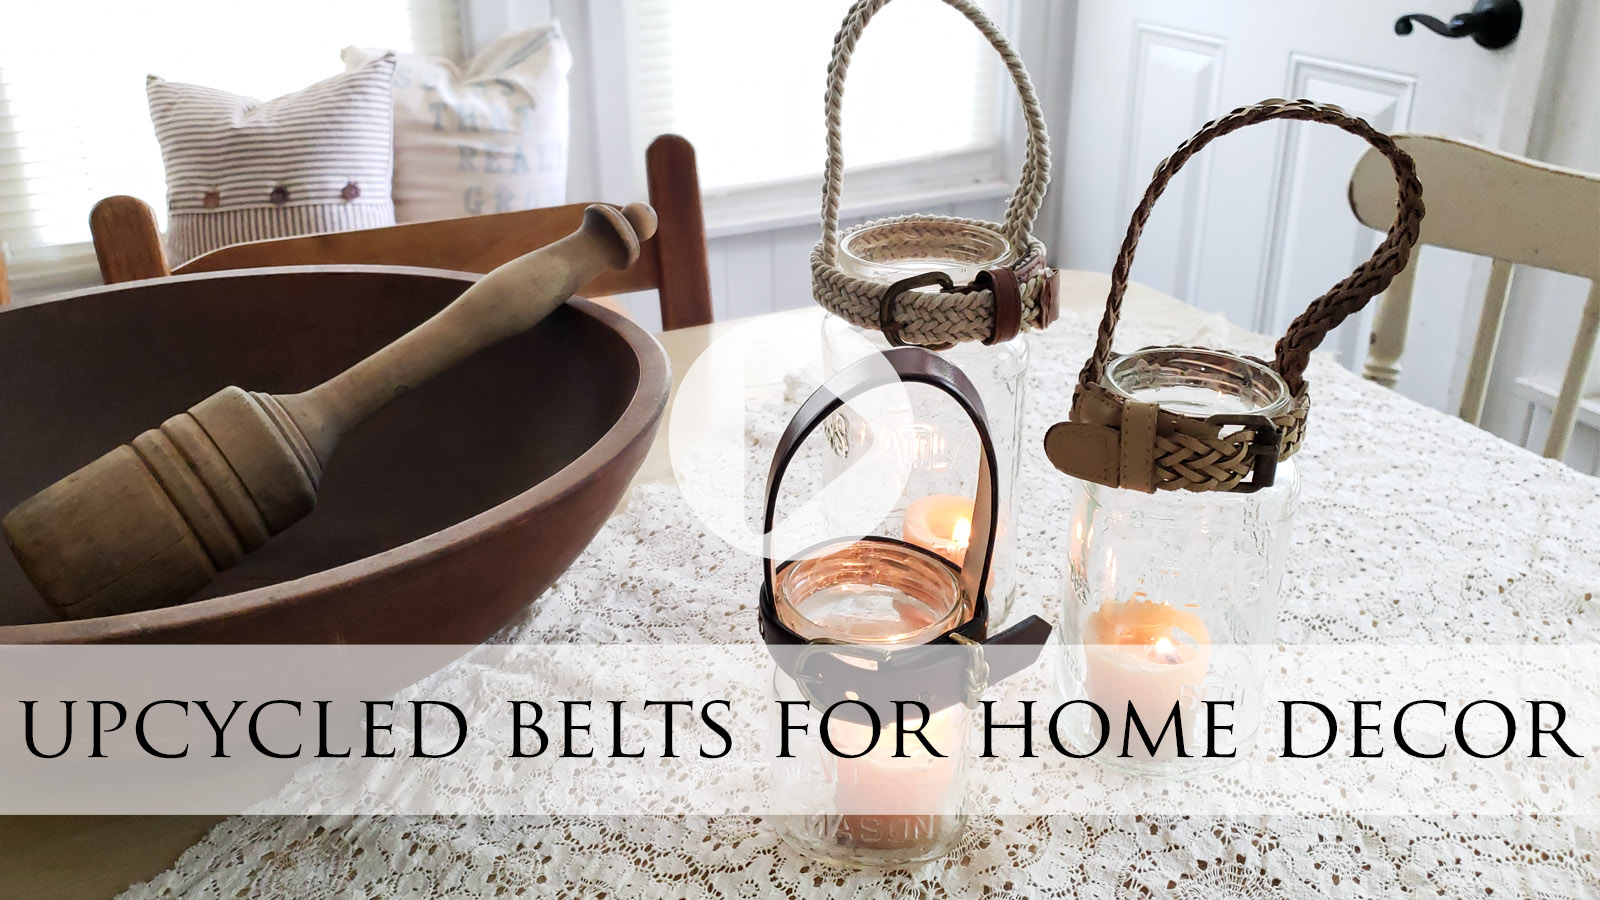 Upcycled Belts for Home Decor Video Tutorial by Larissa of Prodigal Pieces   prodigalpieces.com